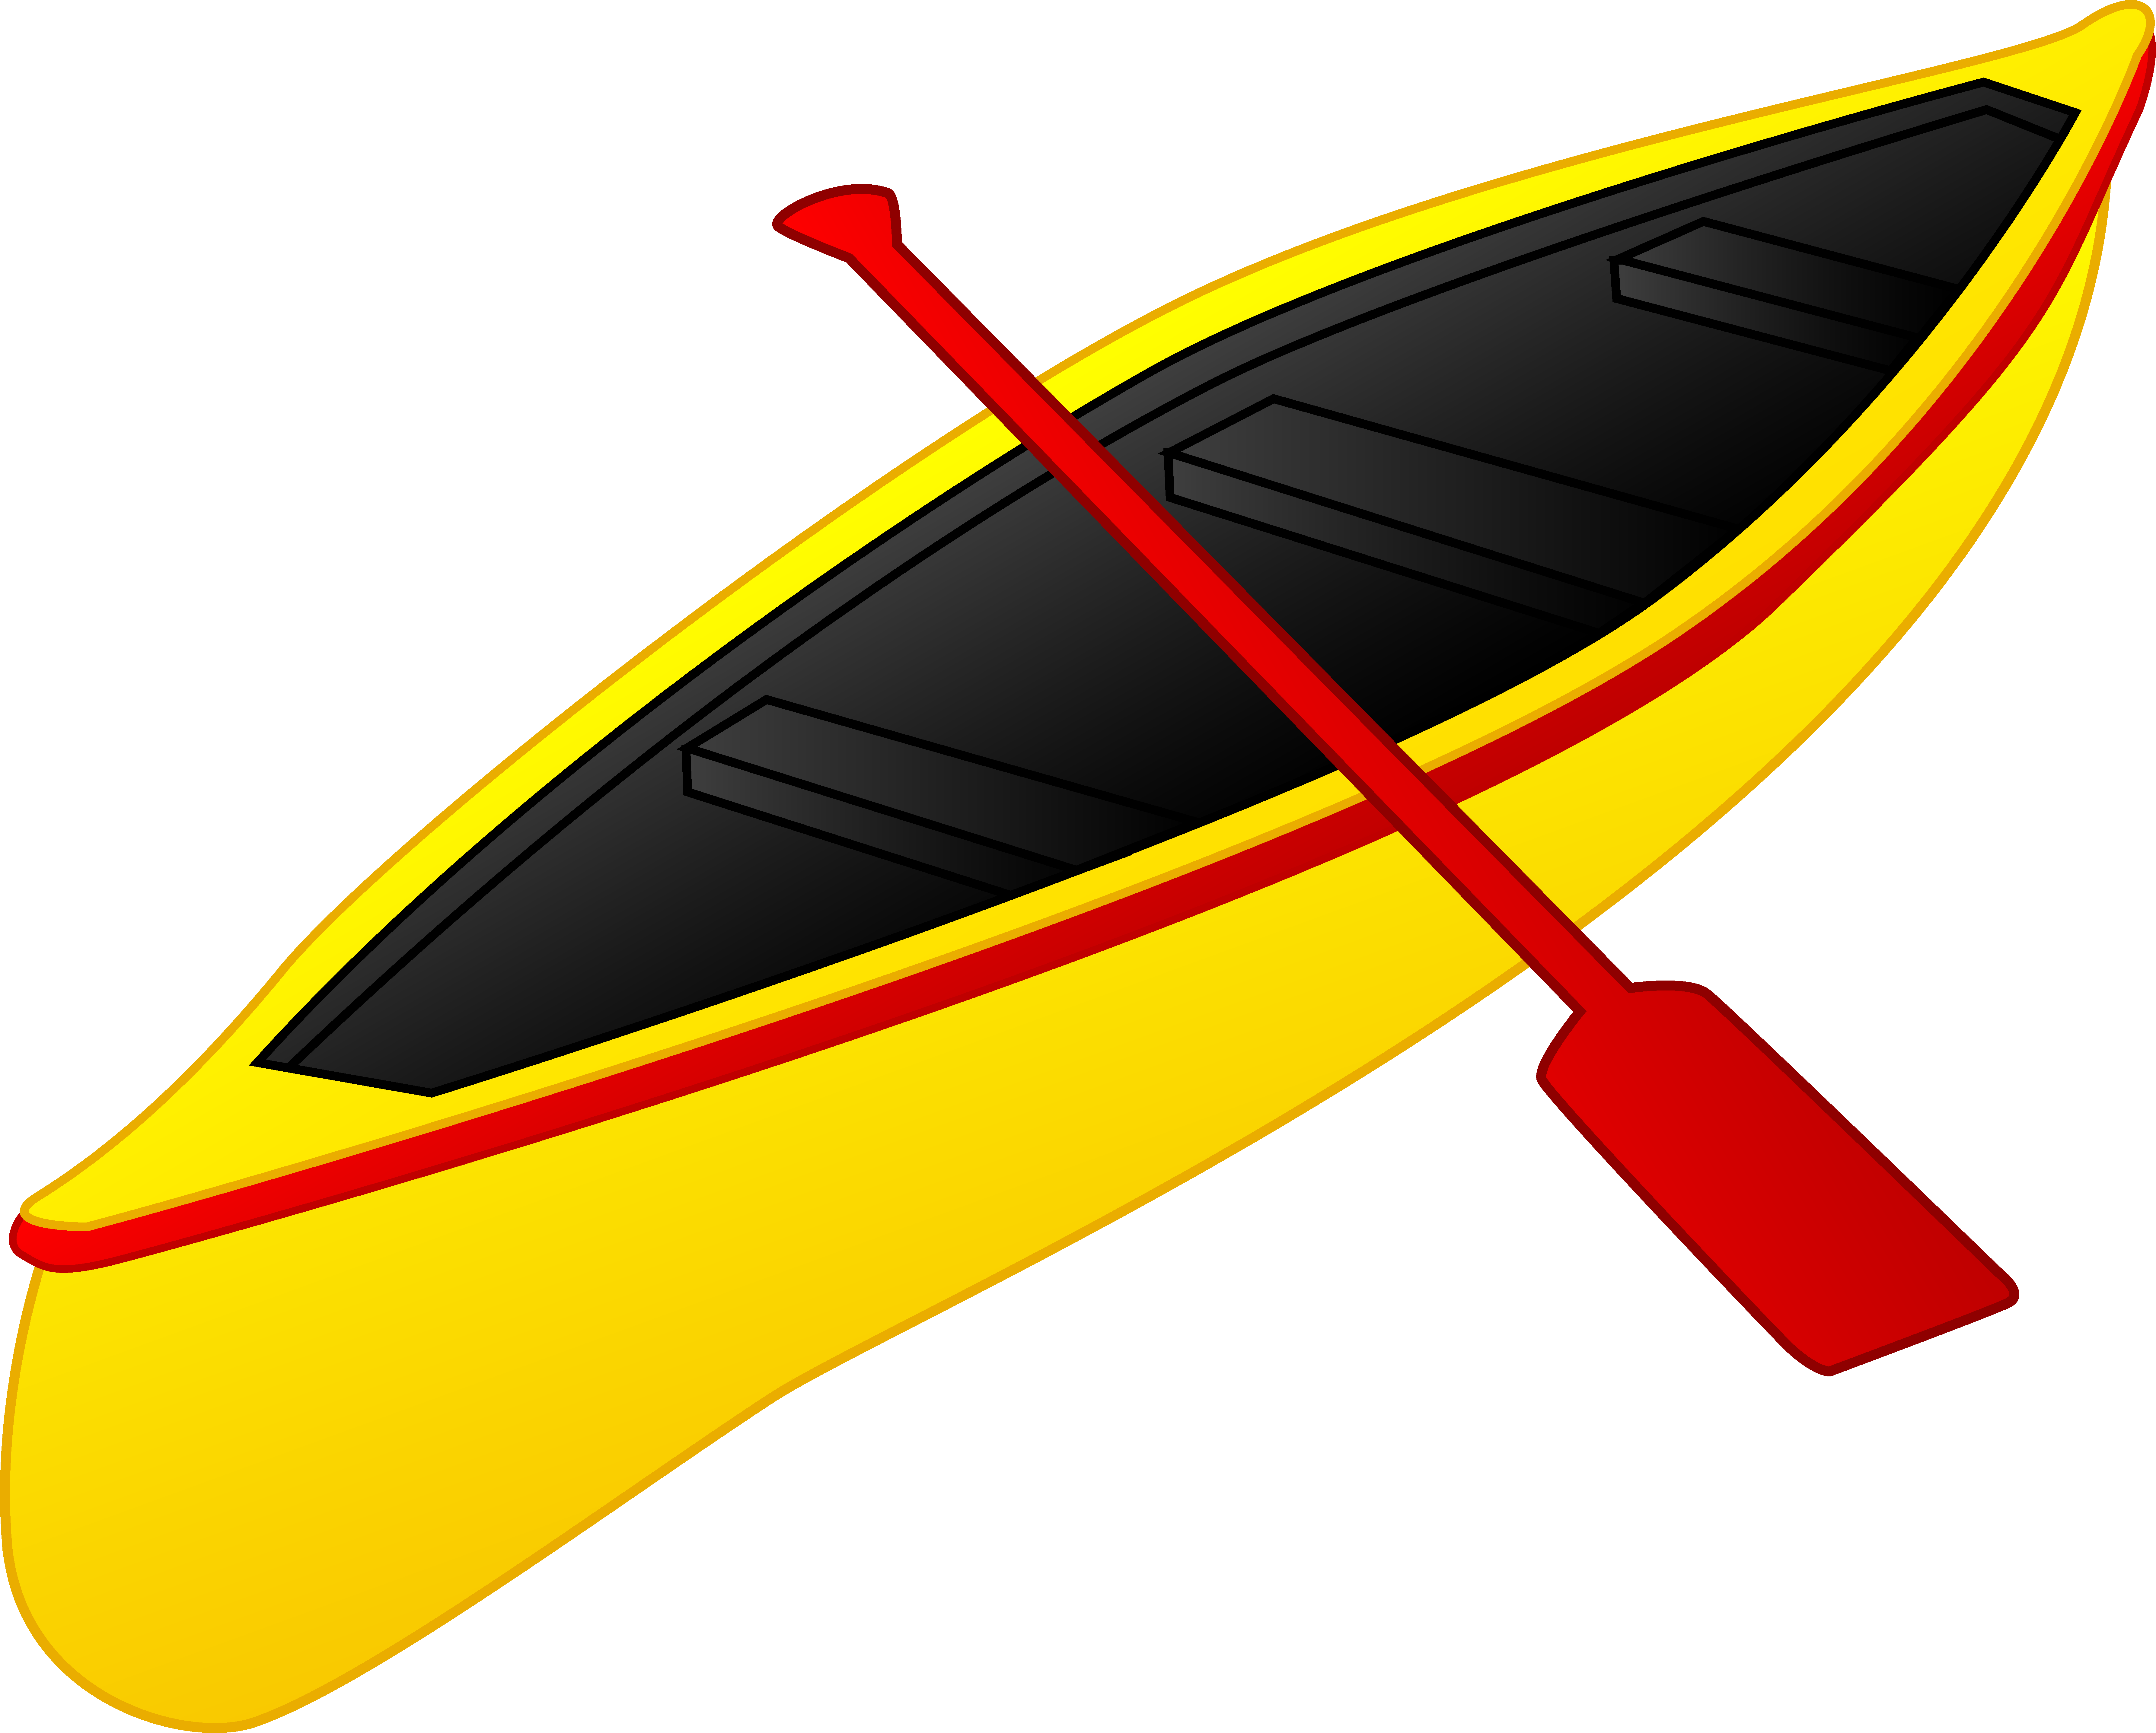 7144x5744 Yellow And Red Canoe